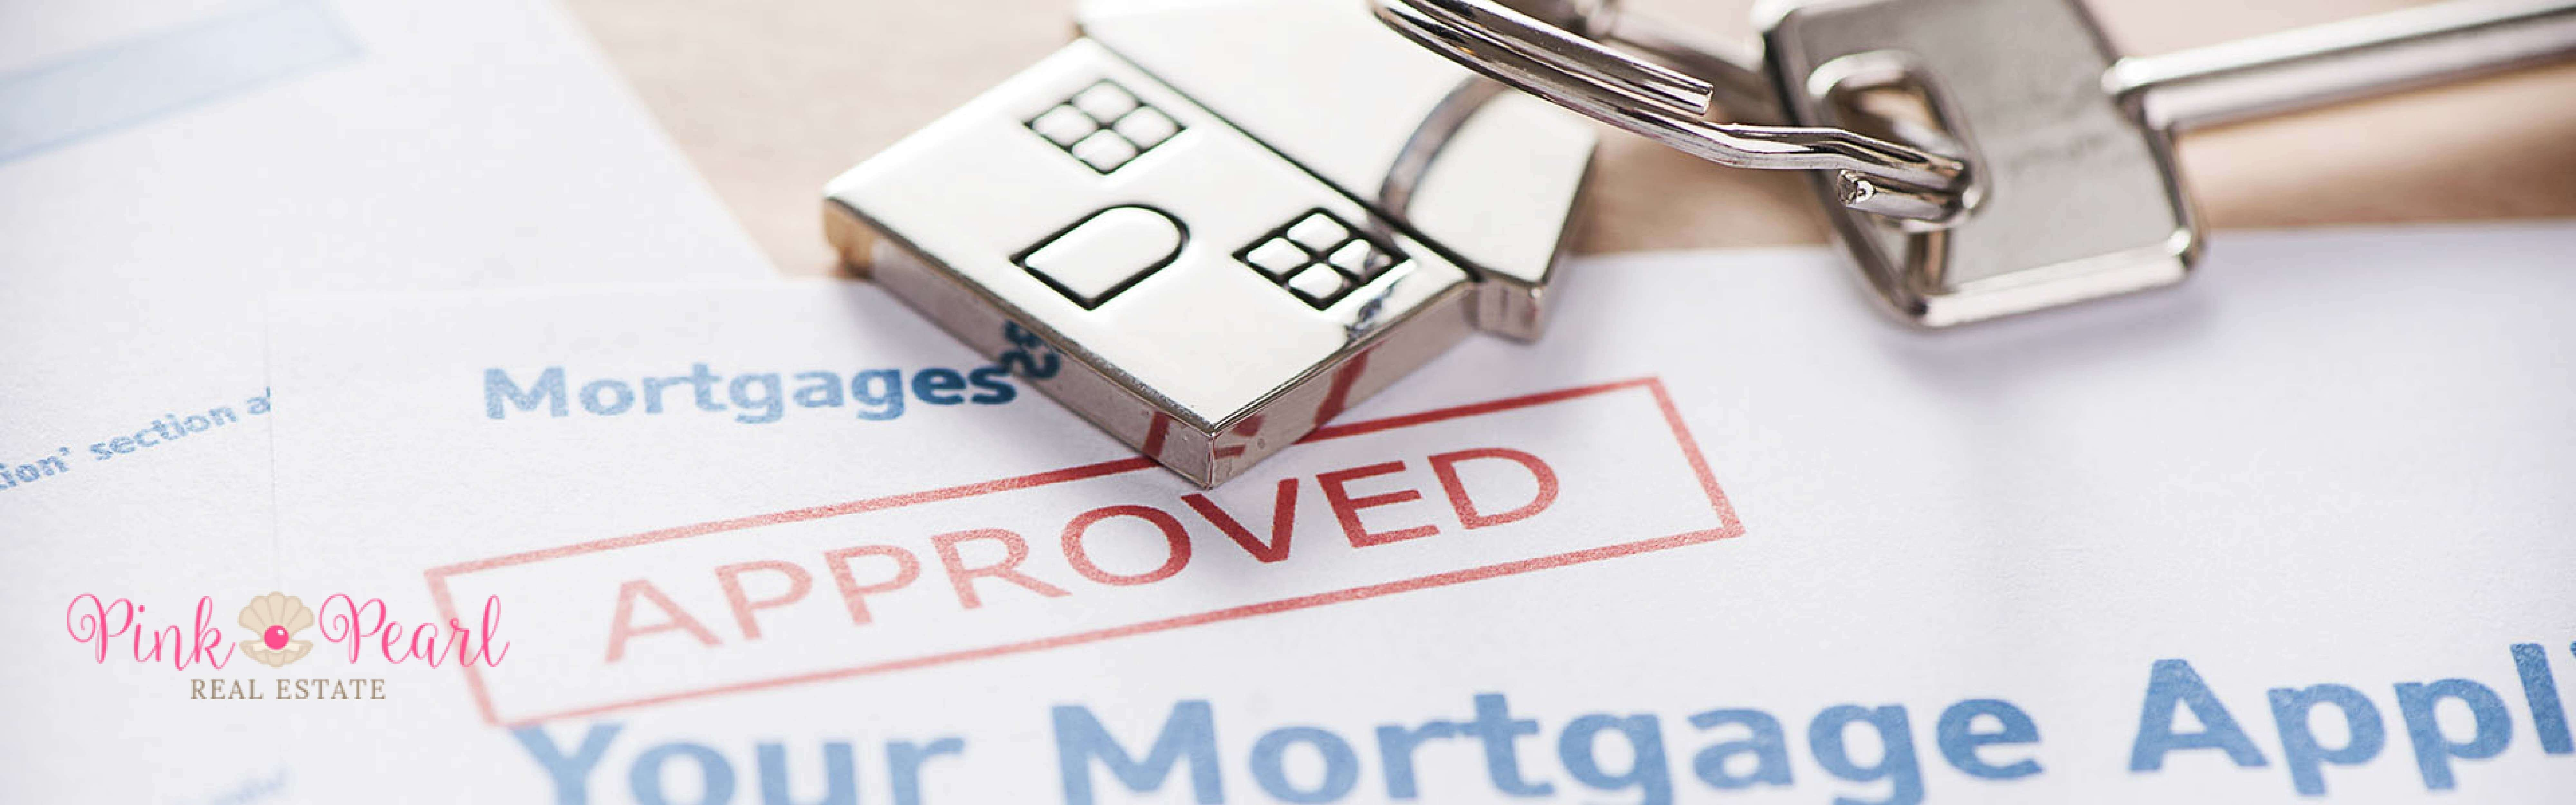 Choosing the right mortgage lender in Virginia Beach